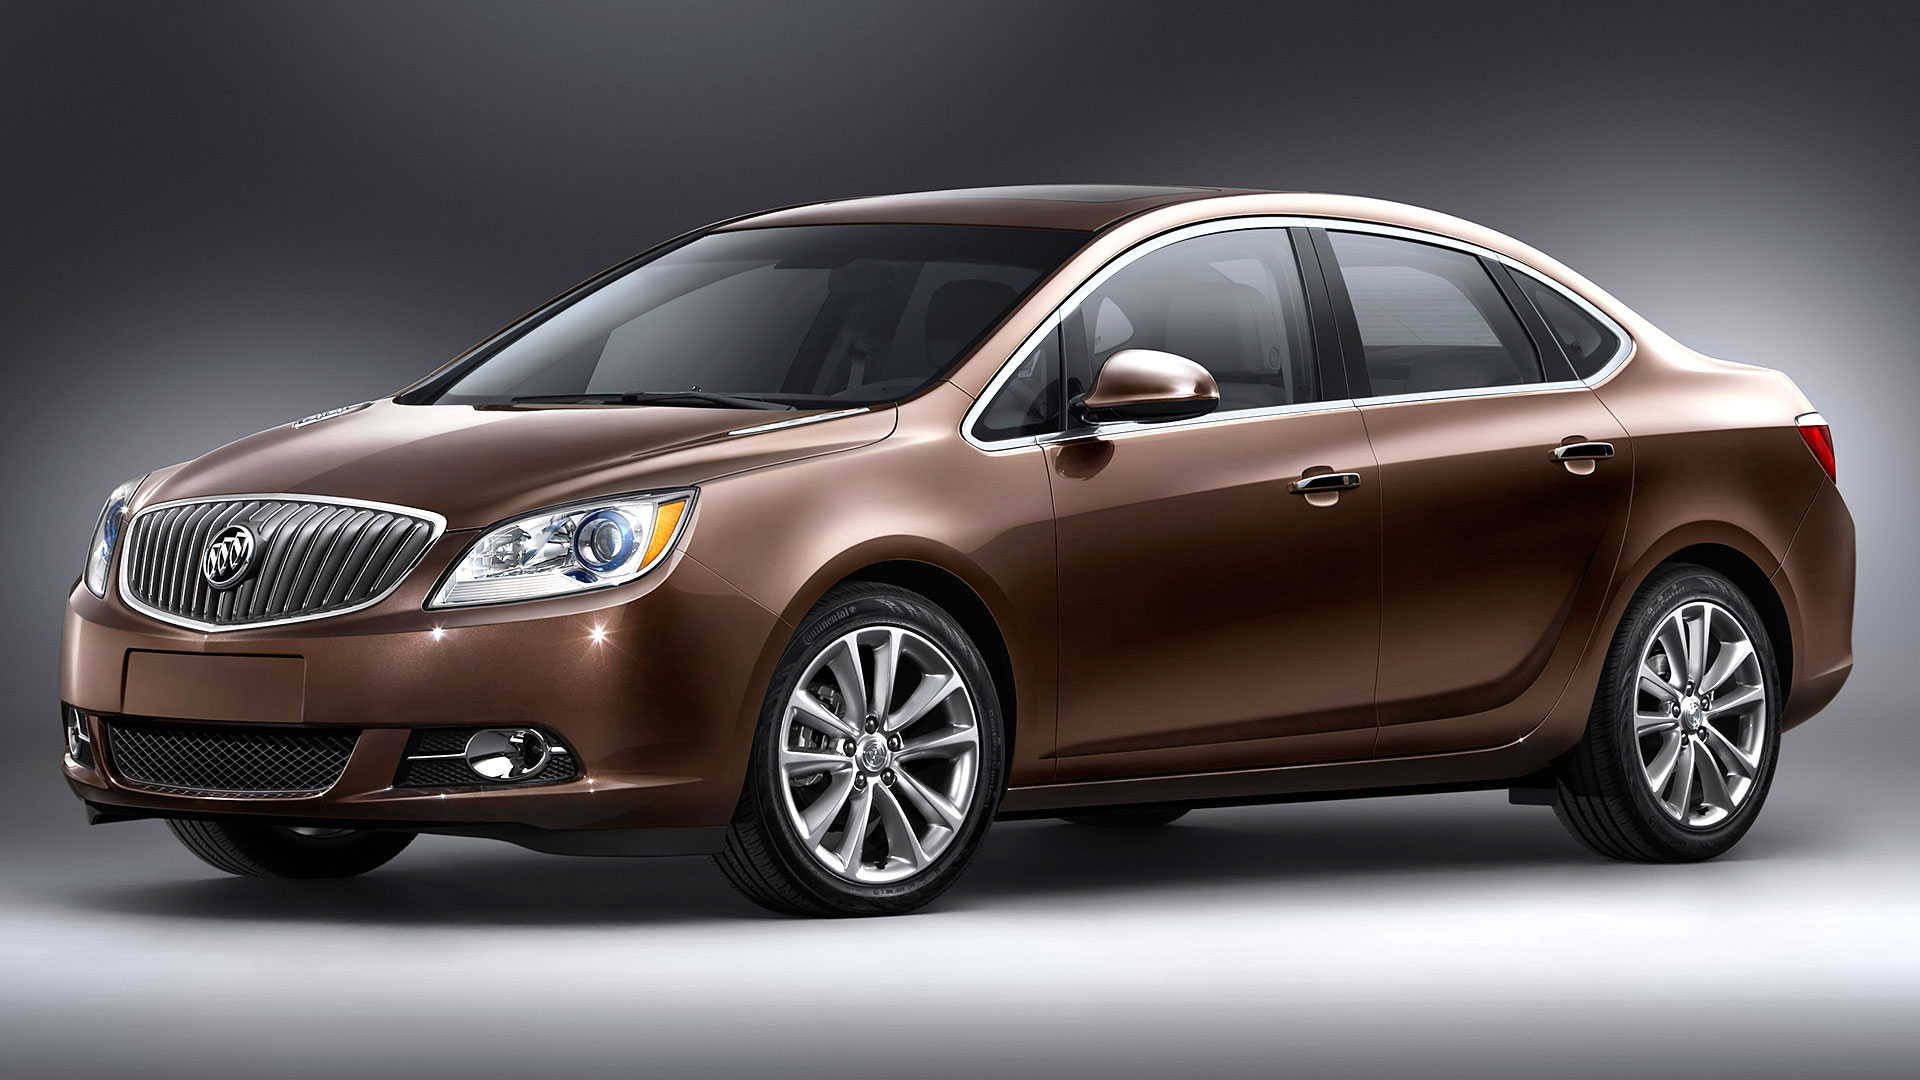 2013 Buick Verano 4-door sedan